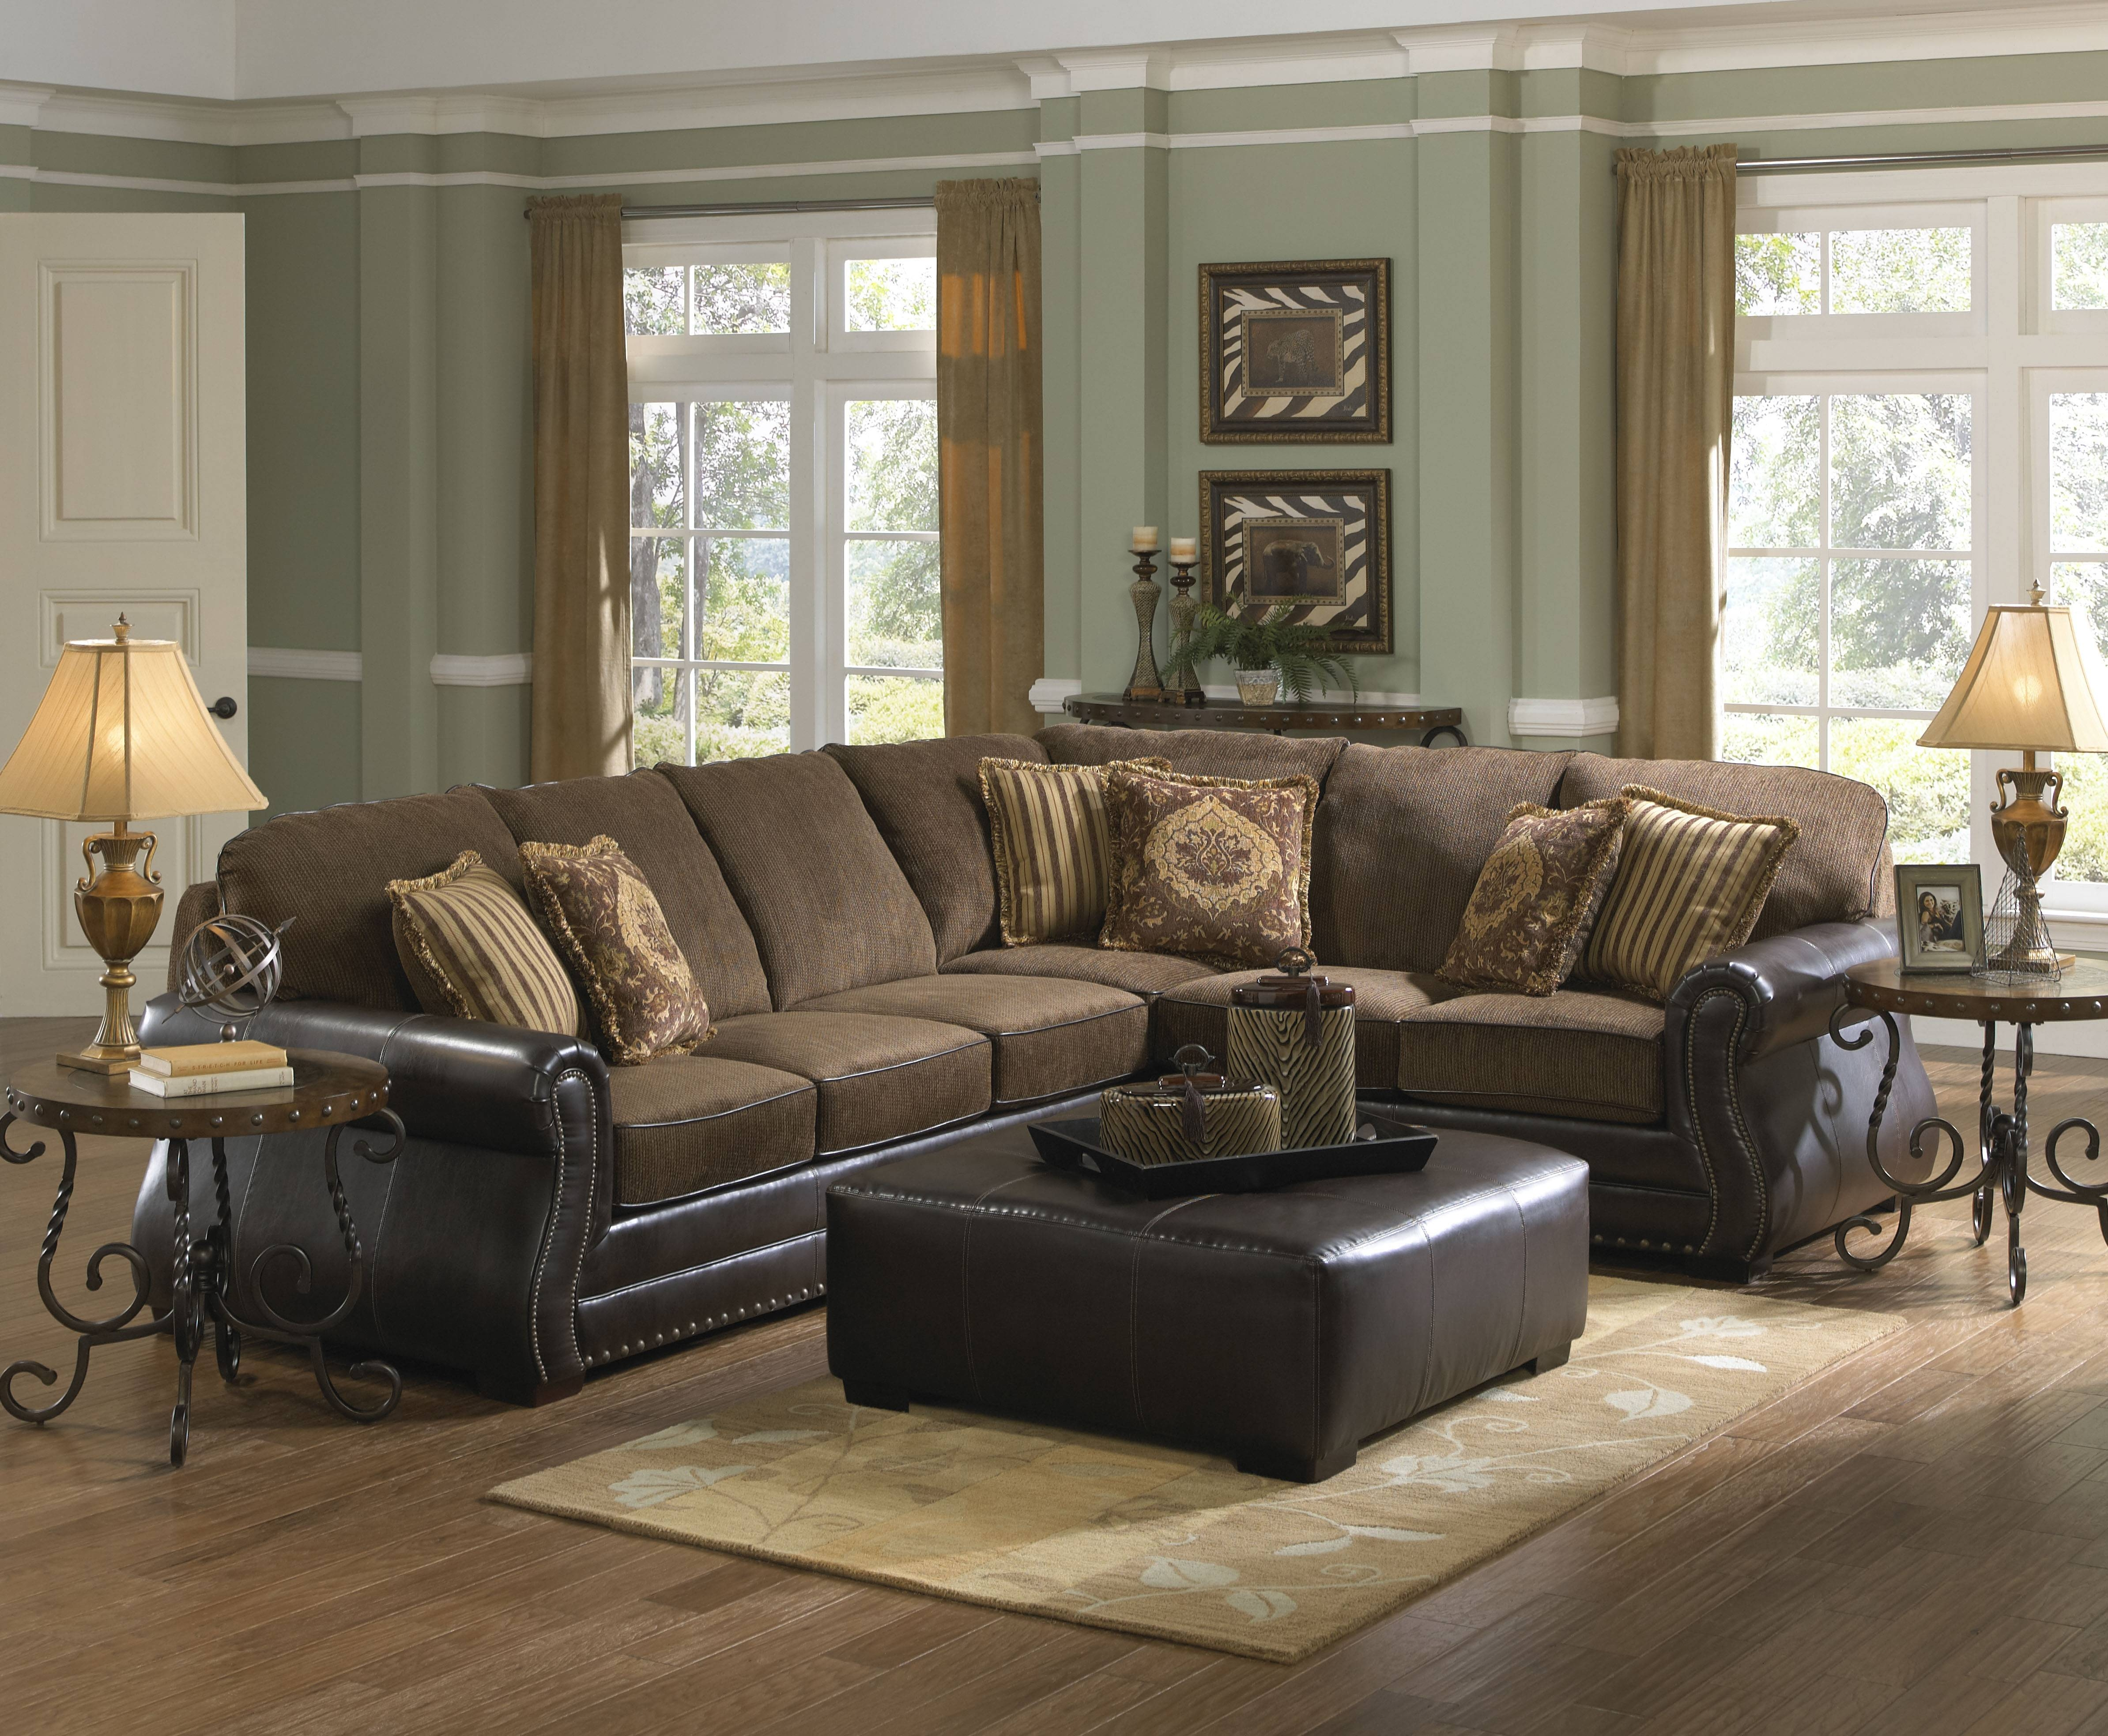 Best Austin Sectional Sofa With Image 3 Of 13 | Carehouse with Austin Sectional Sofa (Image 4 of 30)